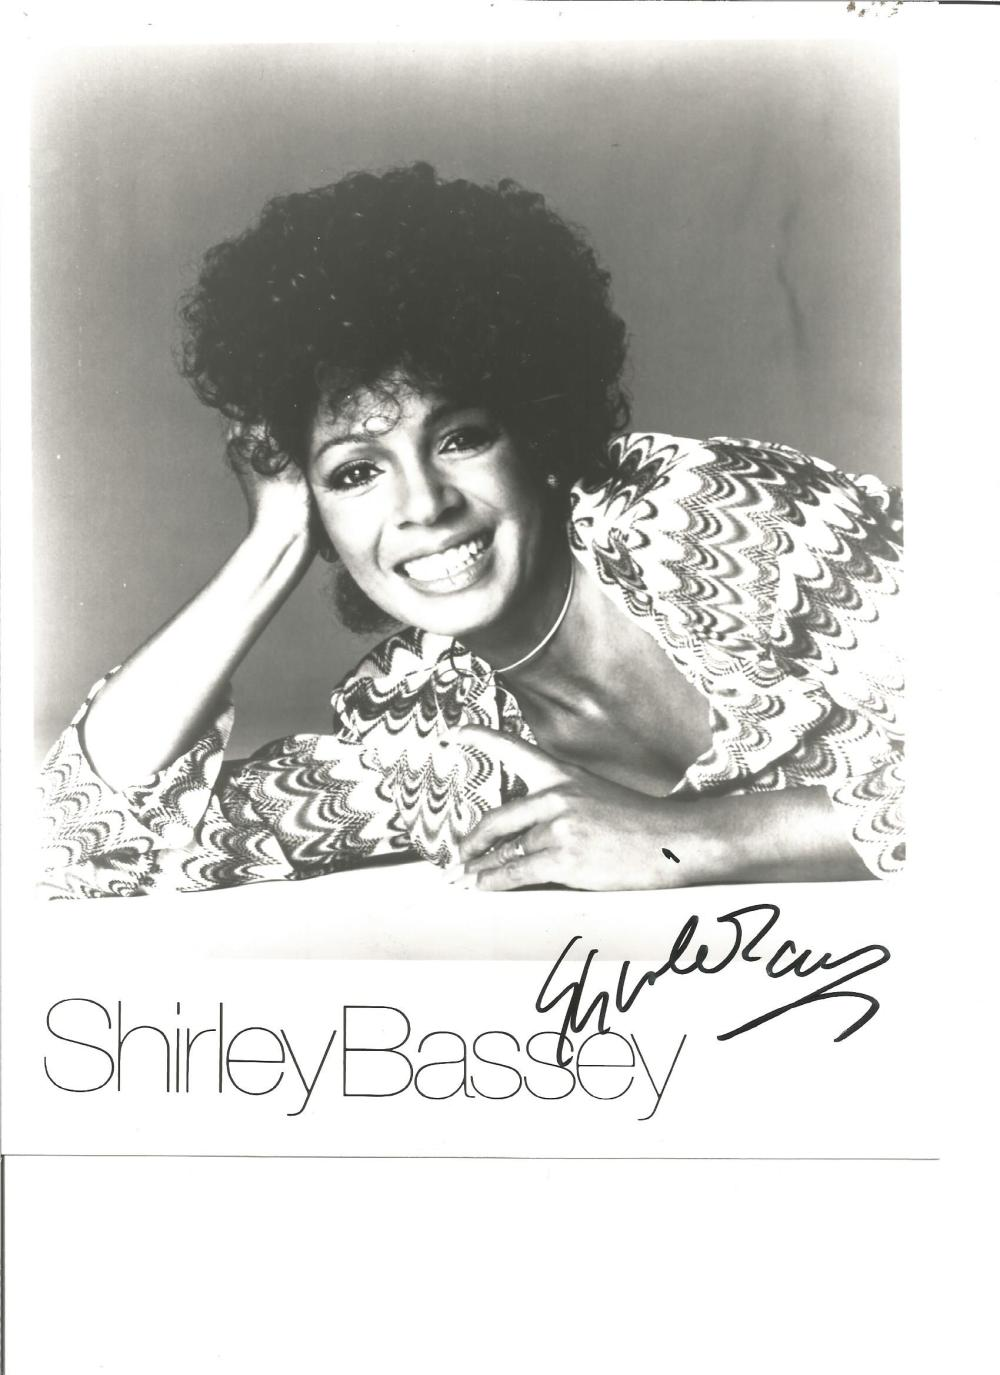 Shirley Bassey signed 10x8 b/w photo. Sang the theme tunes for 3 James Bond films. Good Condition.